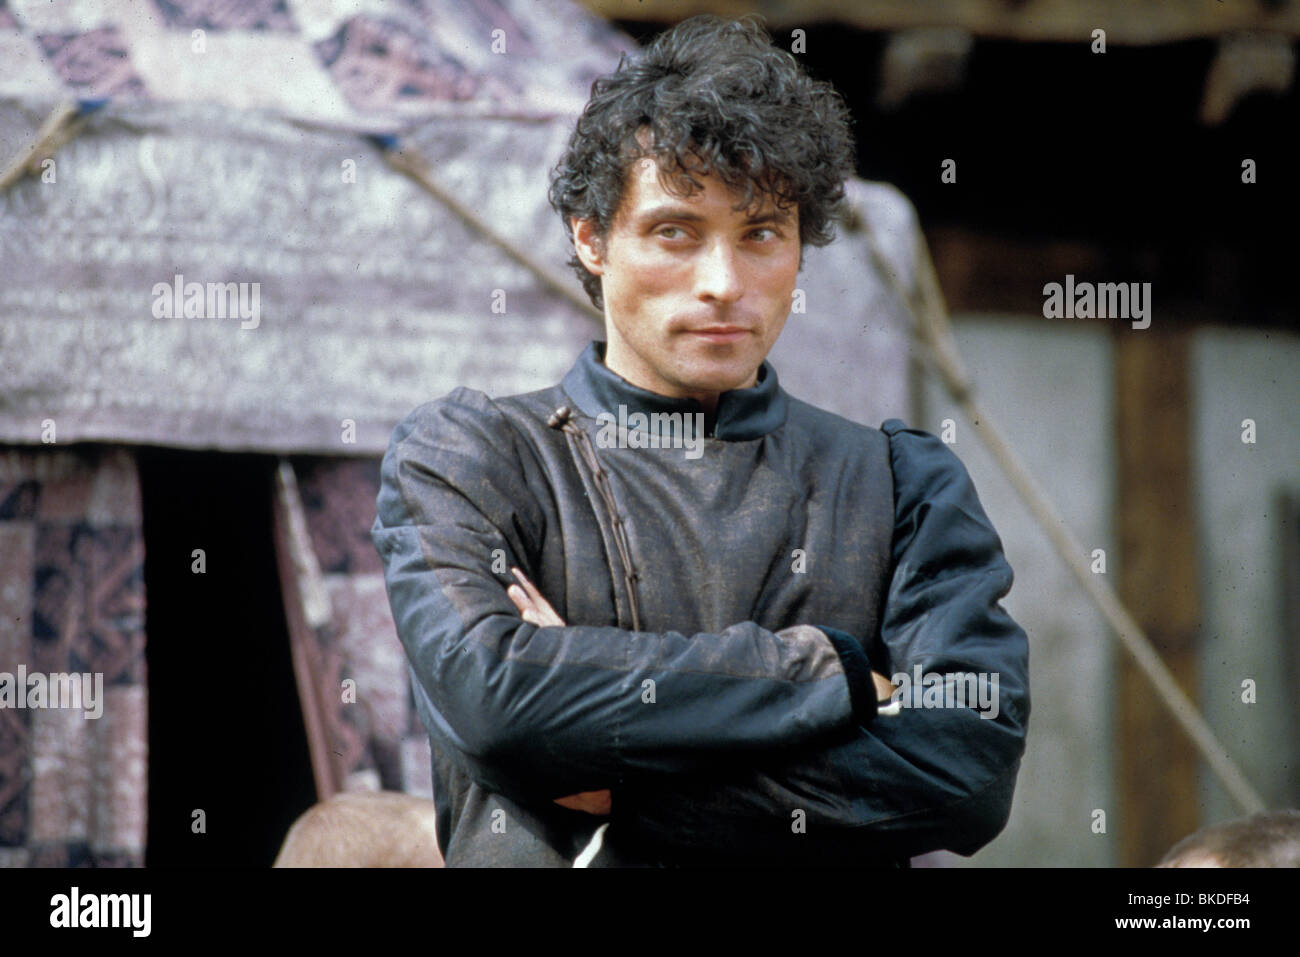 A KNIGHT'S TALE (2001) RUFUS SEWELL KNTA 019 - Stock Image